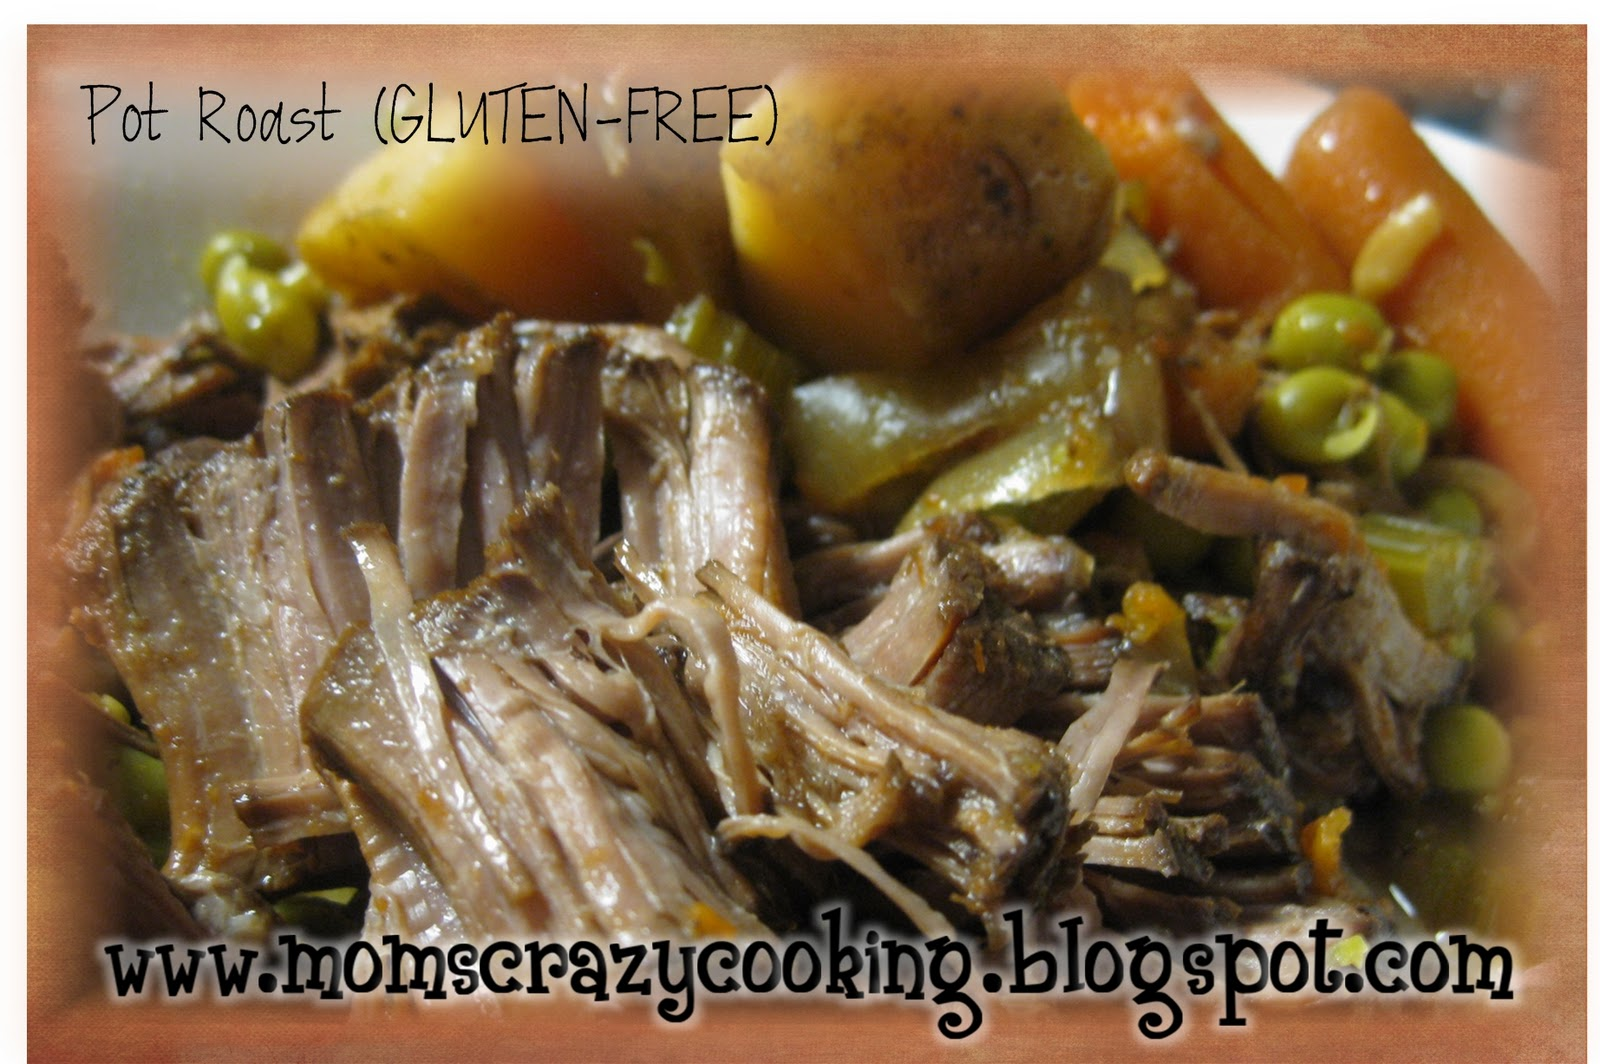 gluten free pot roast crock pot